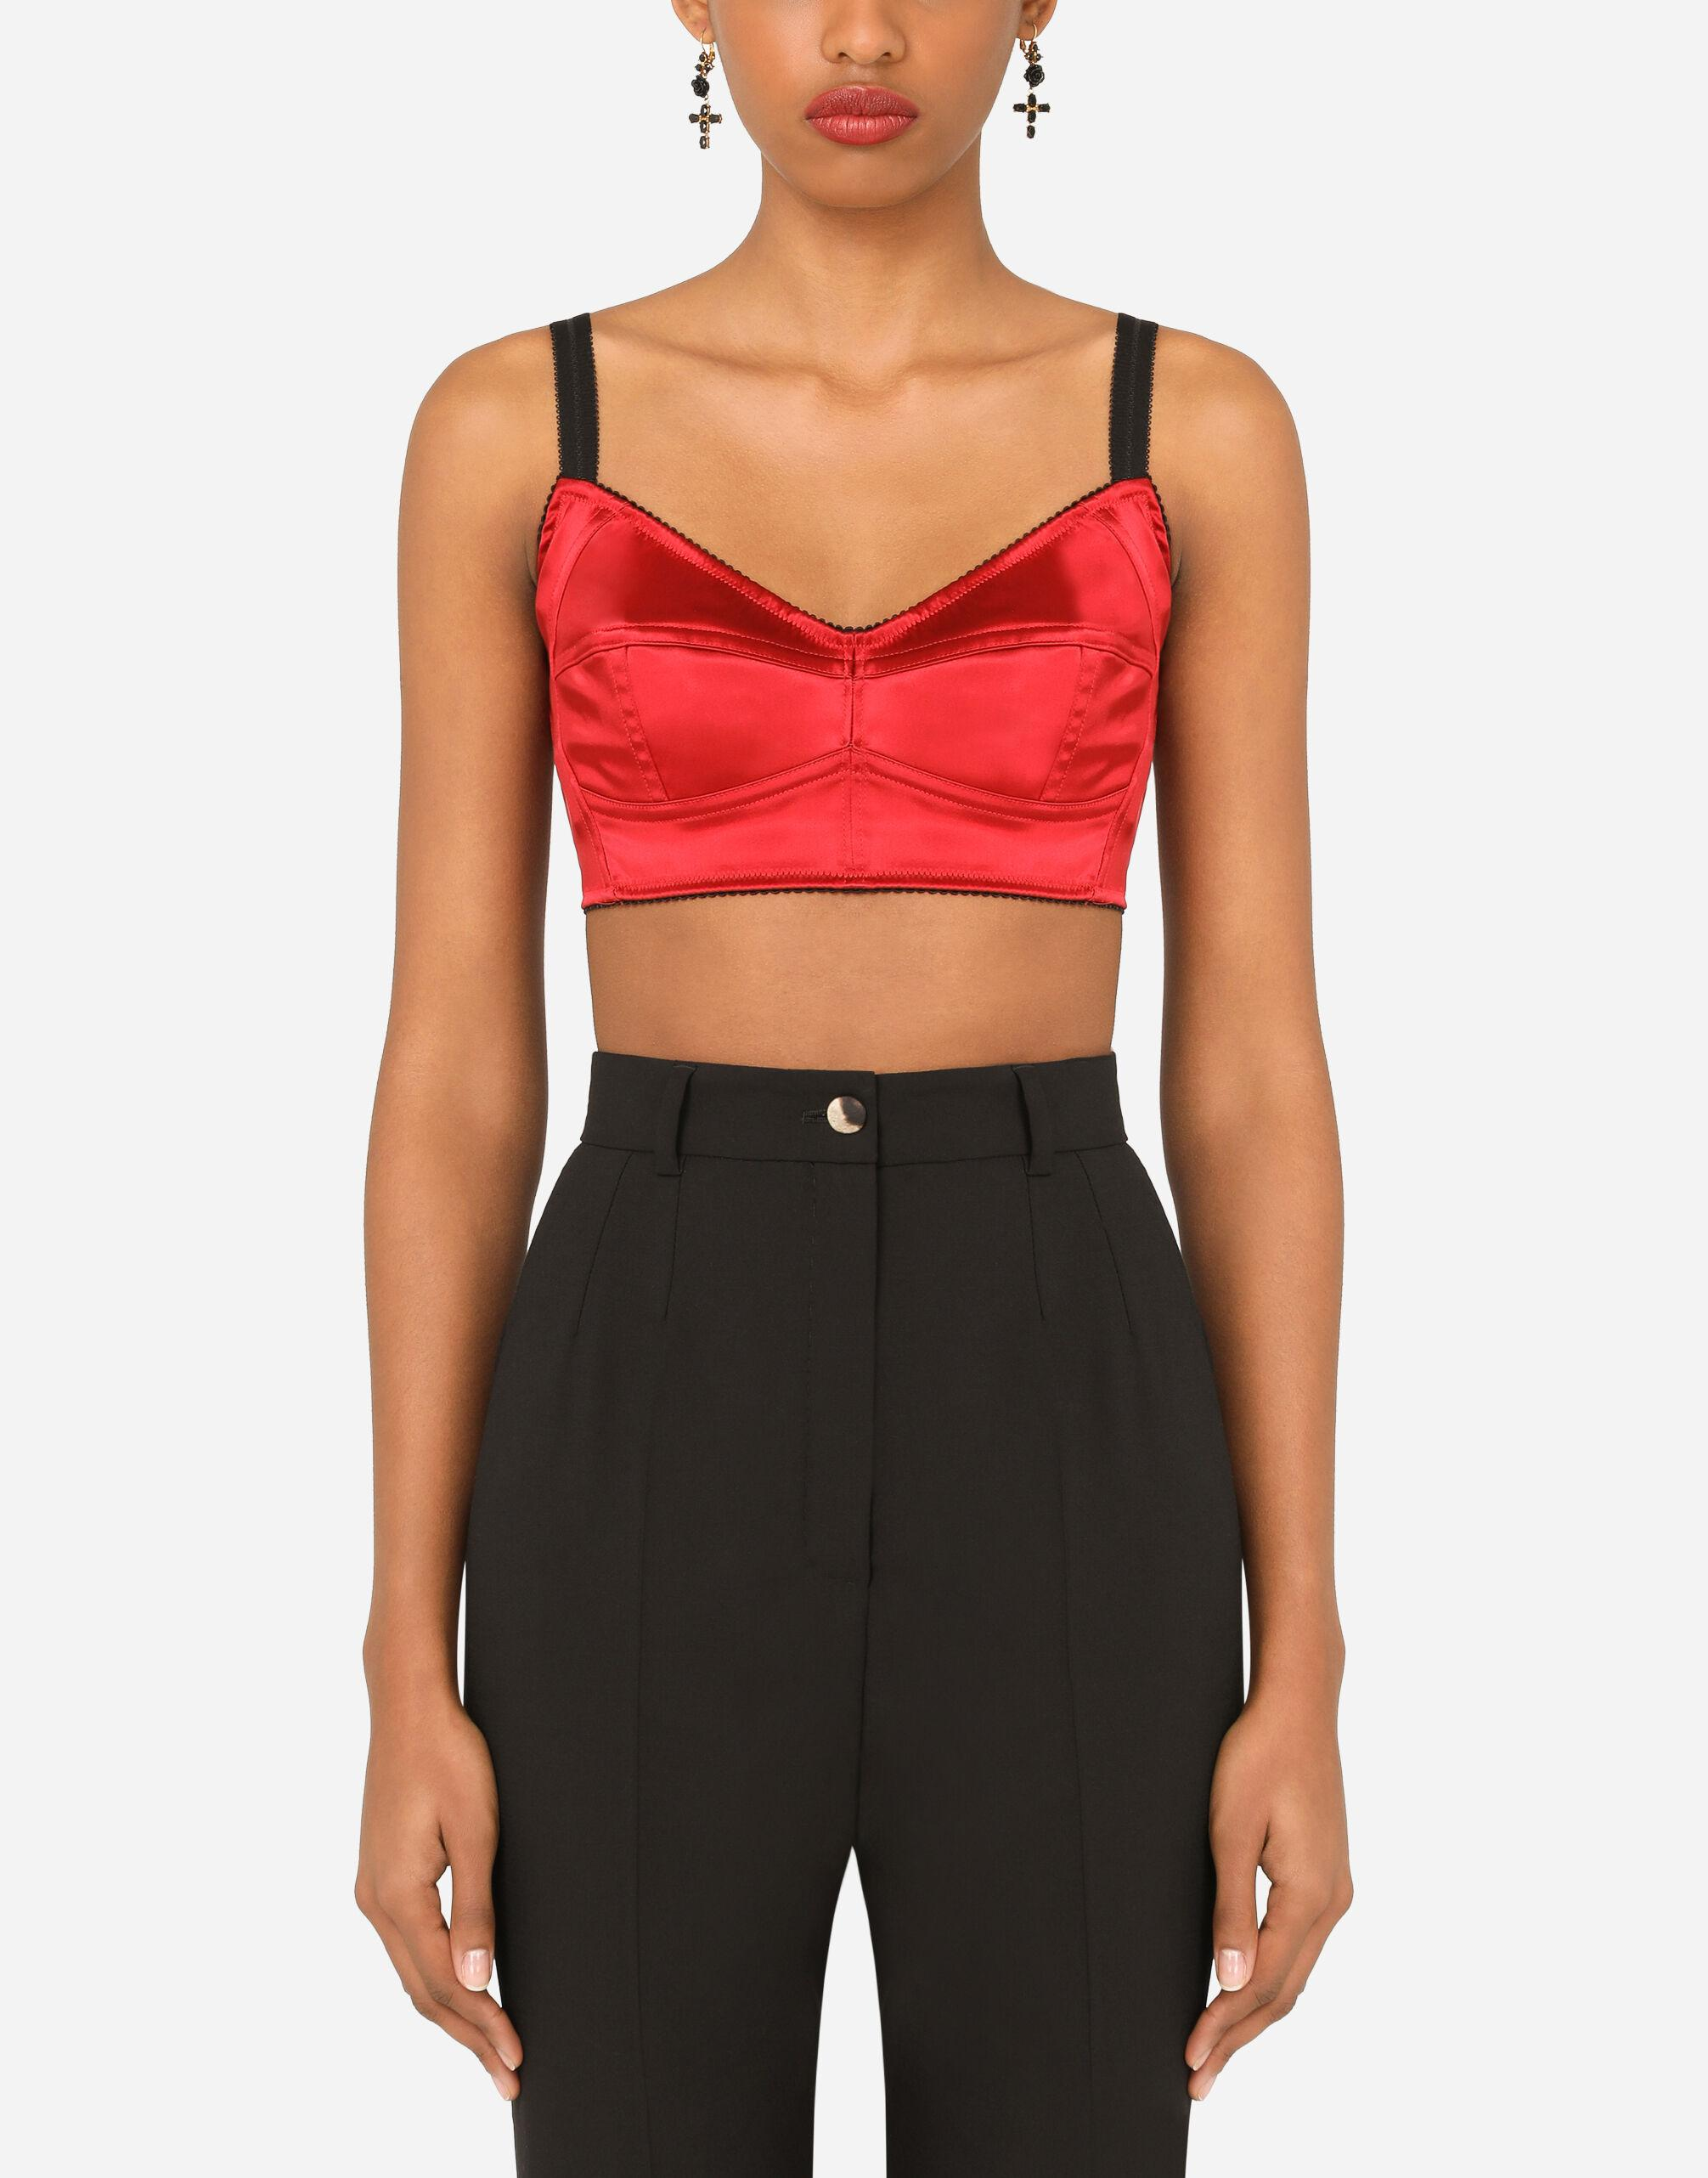 Bustier top with sweetheart neckline